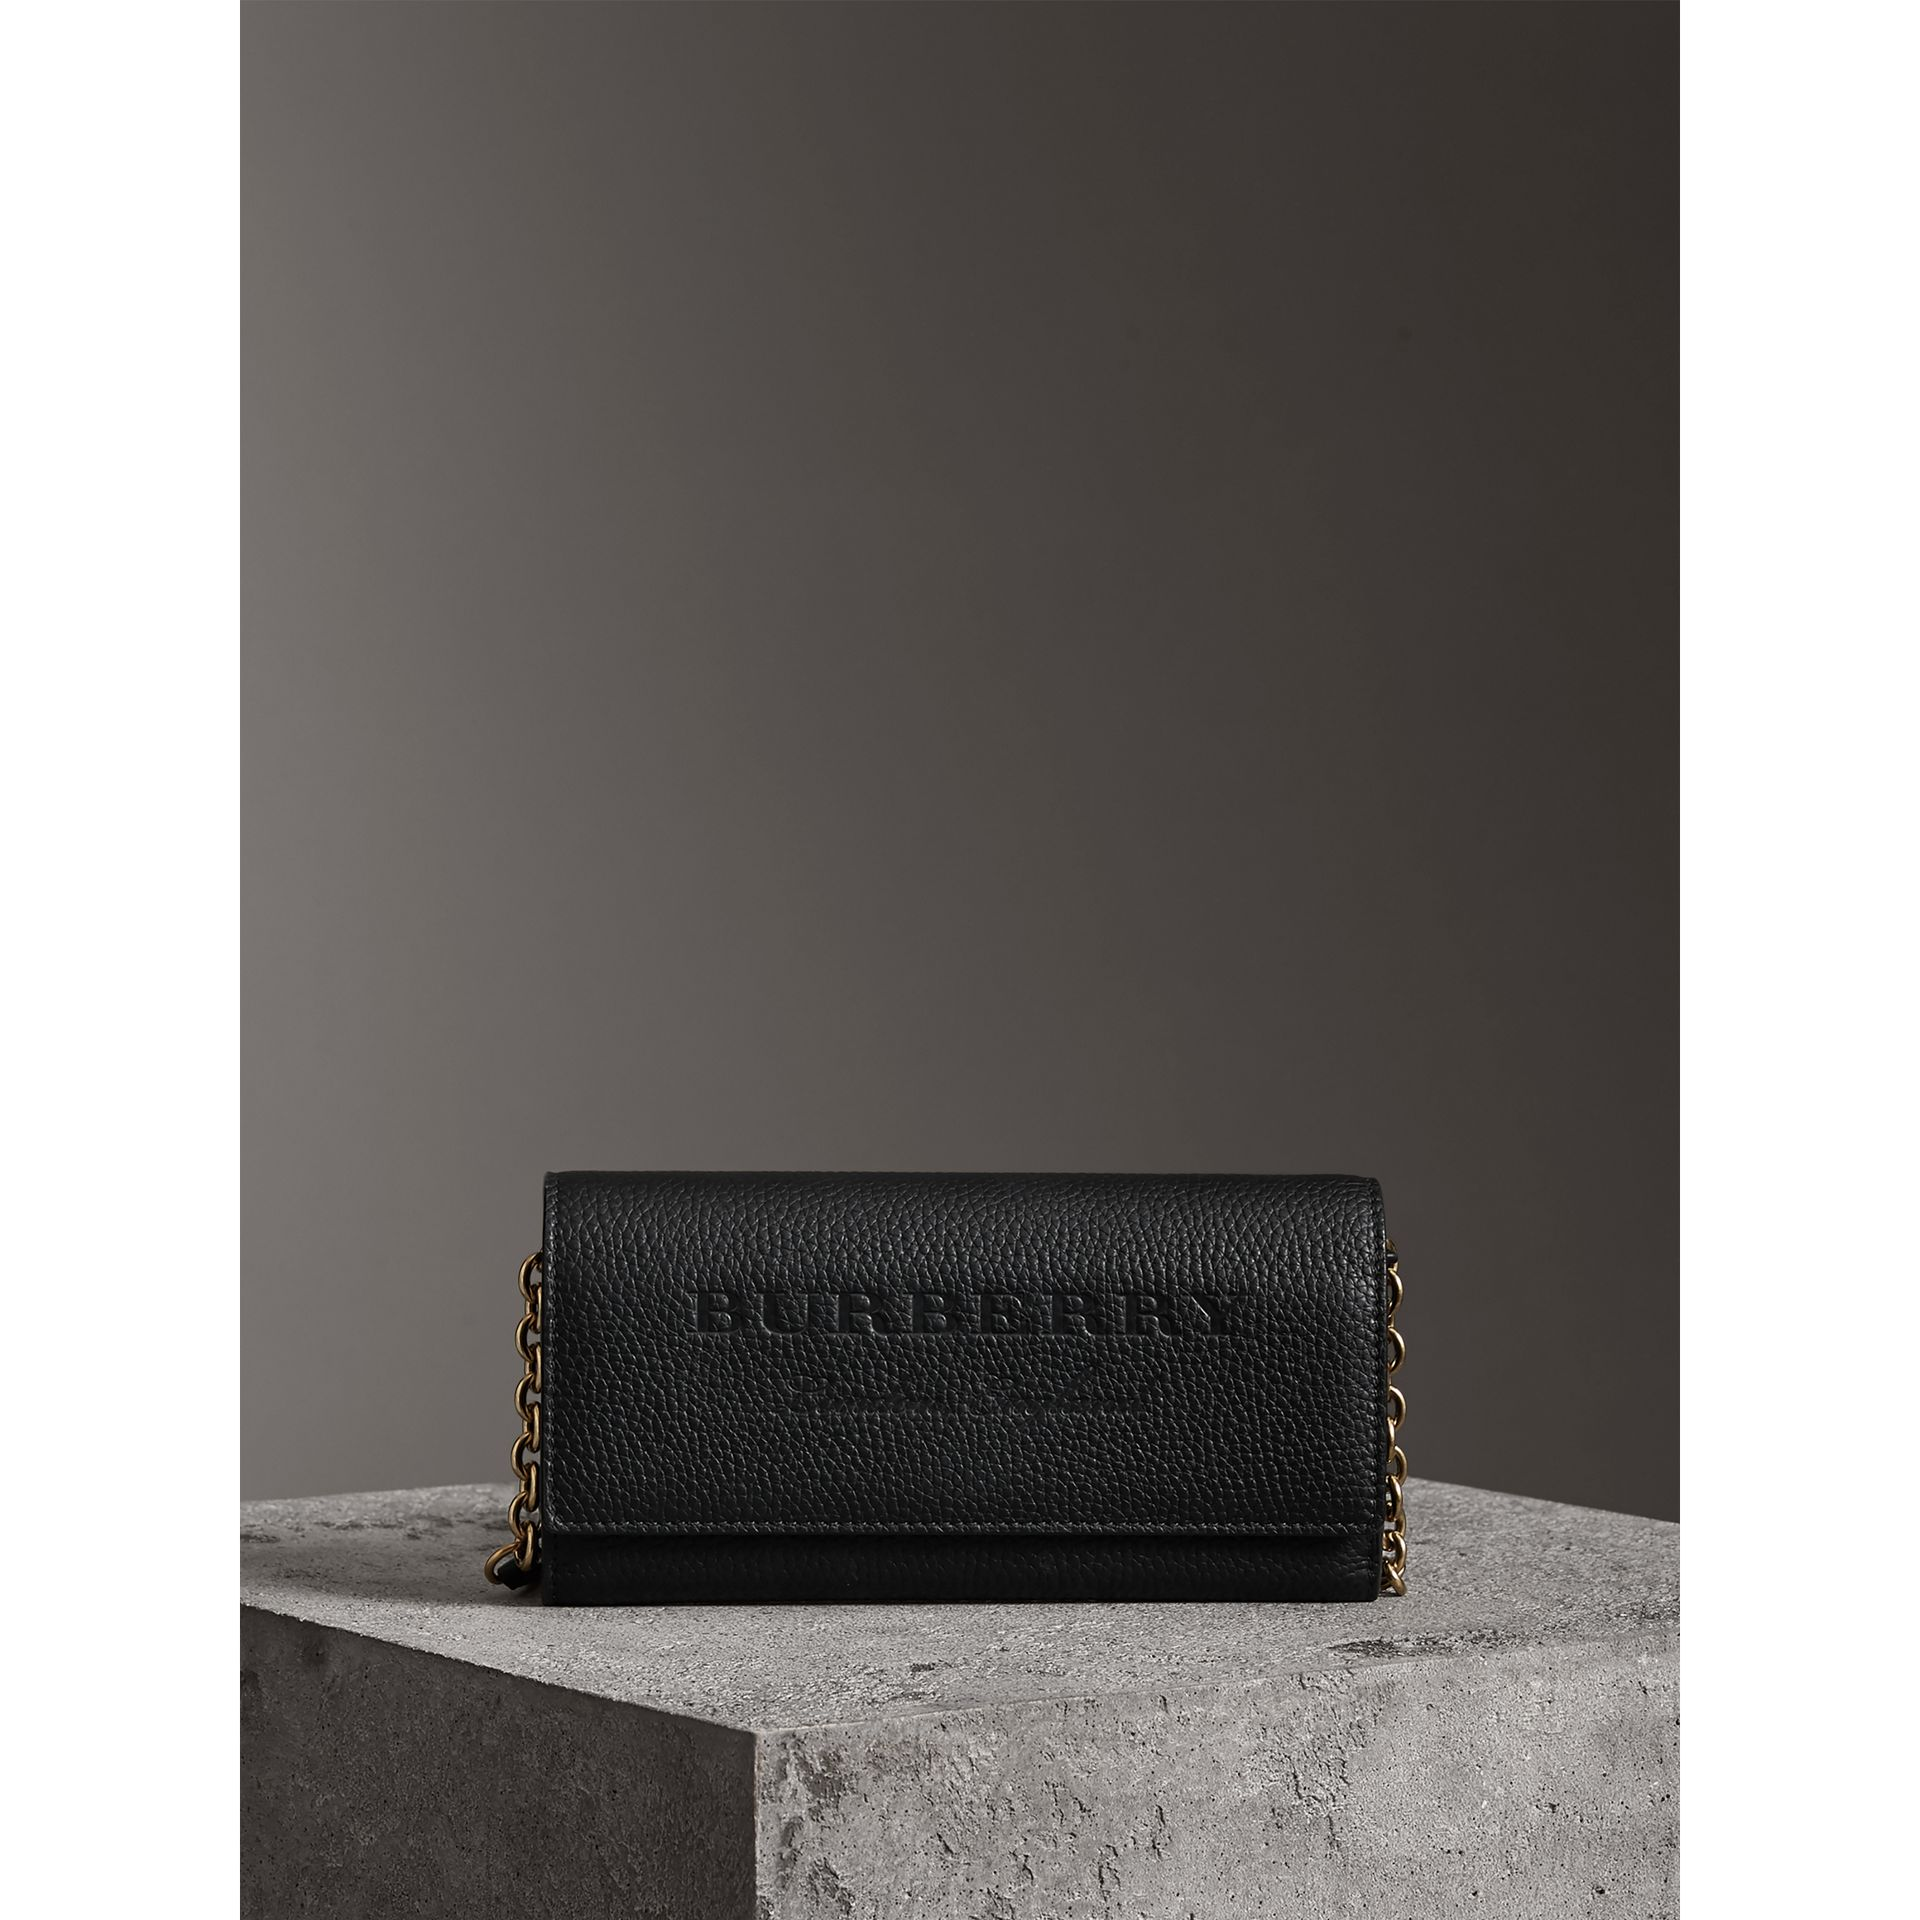 Embossed Leather Wallet with Chain in Black - Women | Burberry United States - gallery image 6